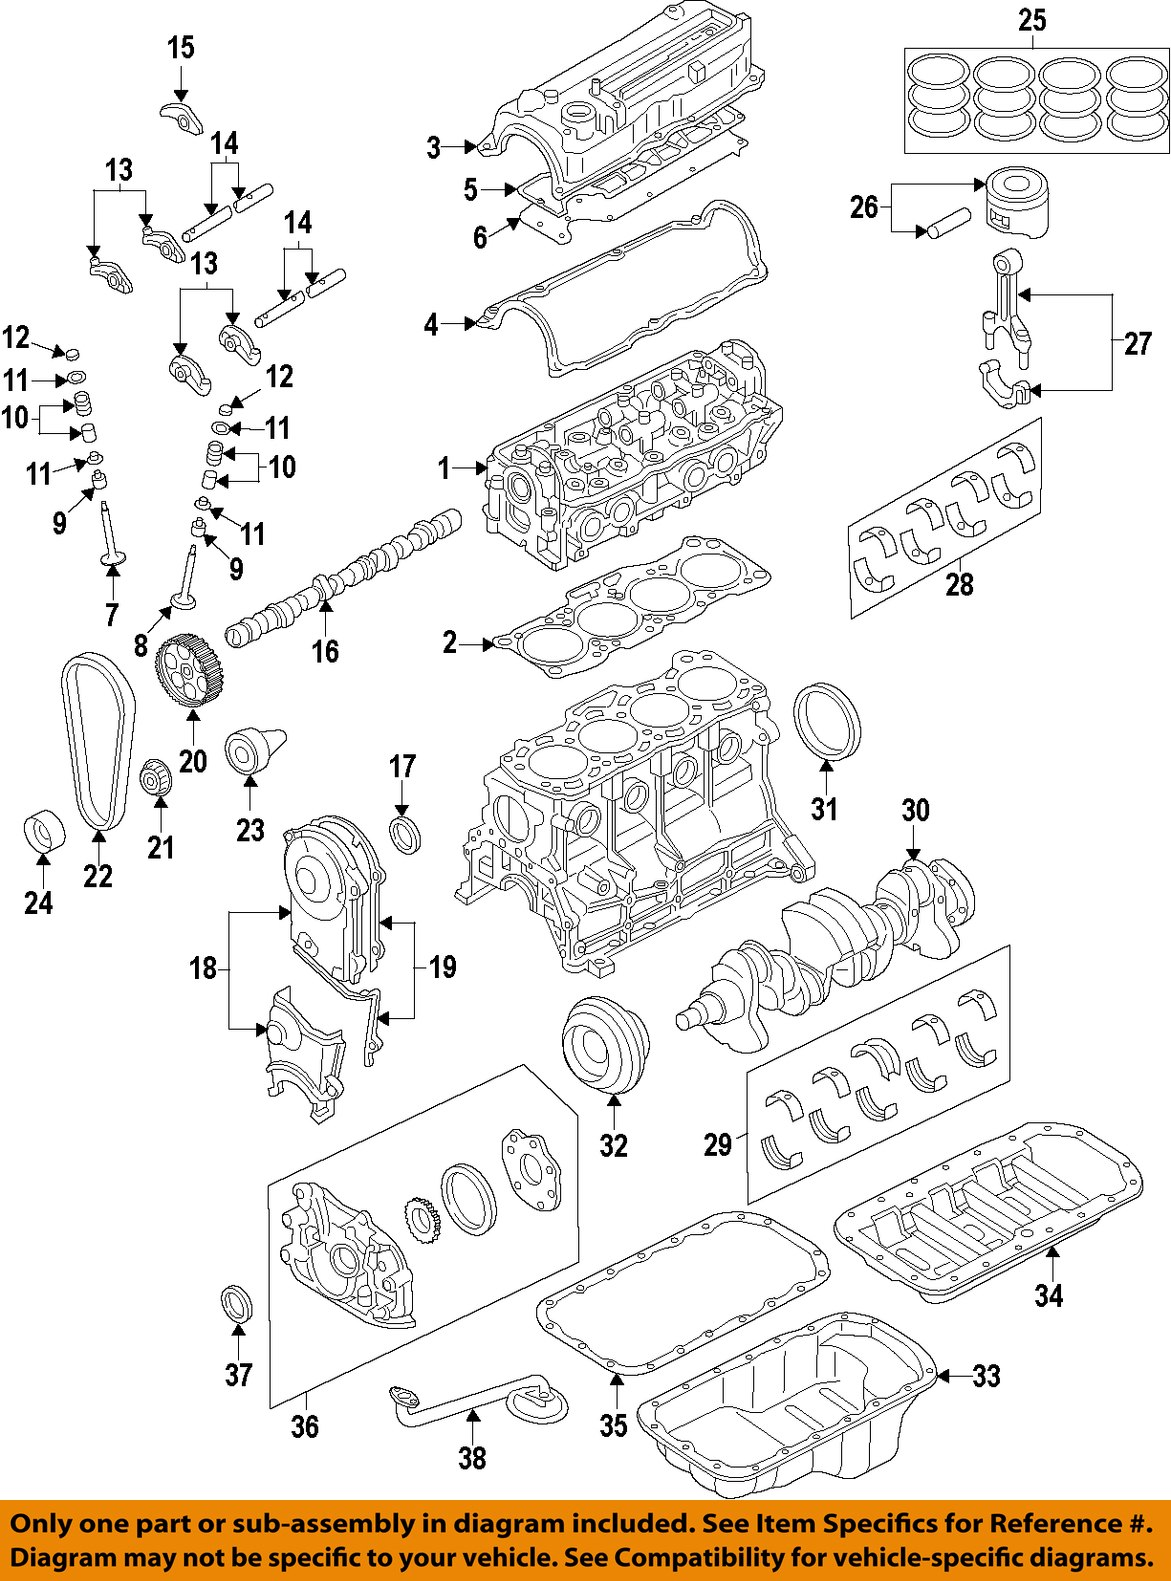 1987 Mazda B2000 Parts Diagram Electrical Wiring Diagrams Alternator B2200 Engine Routing Enthusiast U2022 2000 B250 Picture Of Thermostat Housing